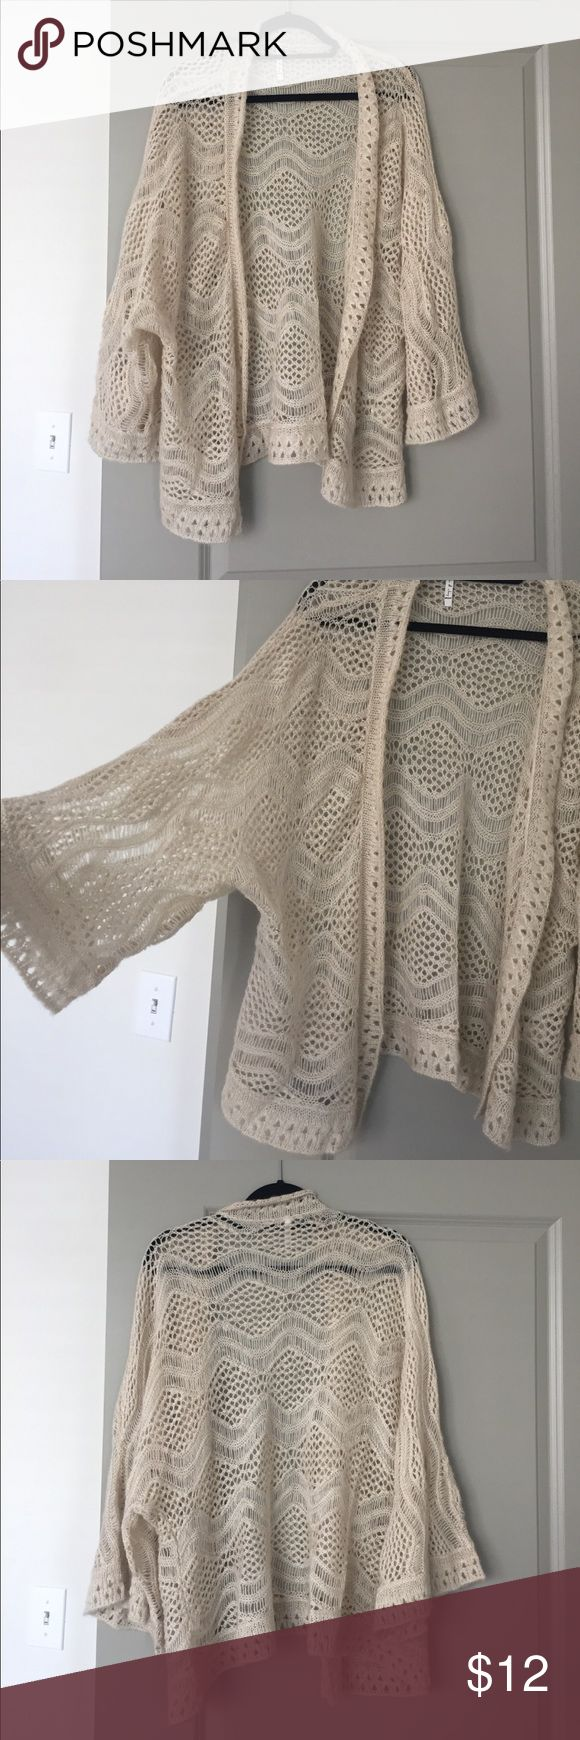 Willow & Clay knit cardigan size L. Cream color Willow & Clay soft knit cardigan. So pretty and vintage-looking. Embraces the 70's vibe. Perfect for work or with a pair of jeans. Size L but would be cute oversized for S or M person. Willow & Clay Sweaters Cardigans